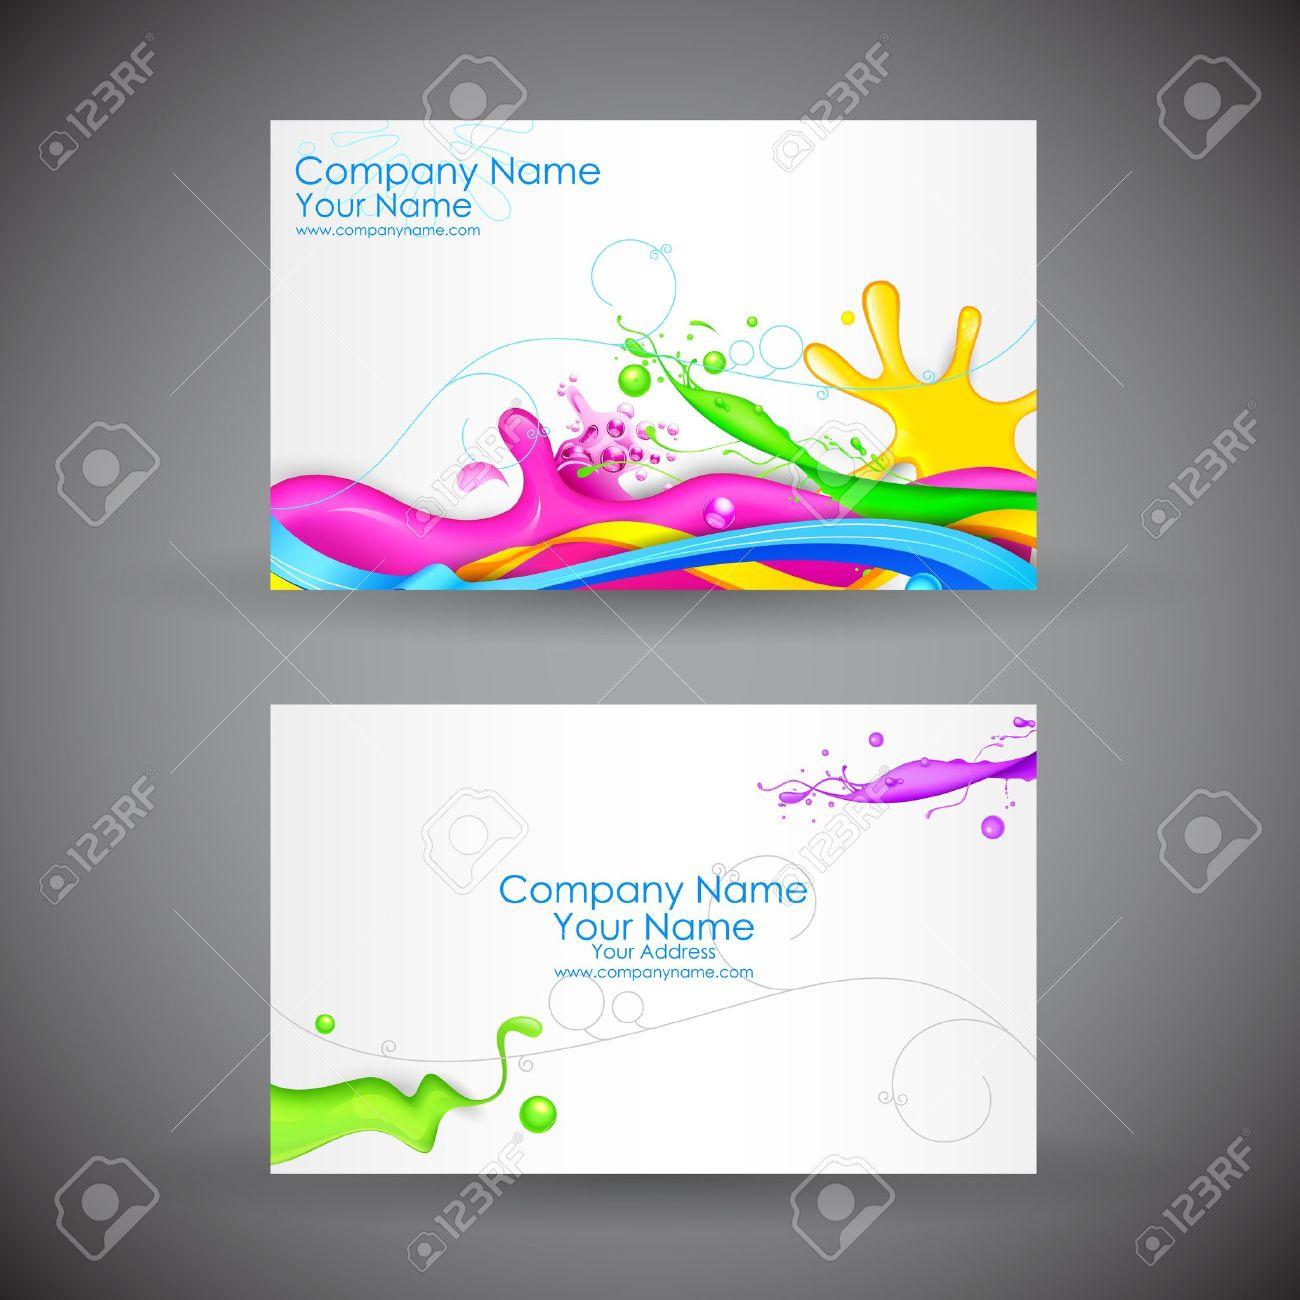 Illustration Of Front And Back Of Corporate Business Card With ...